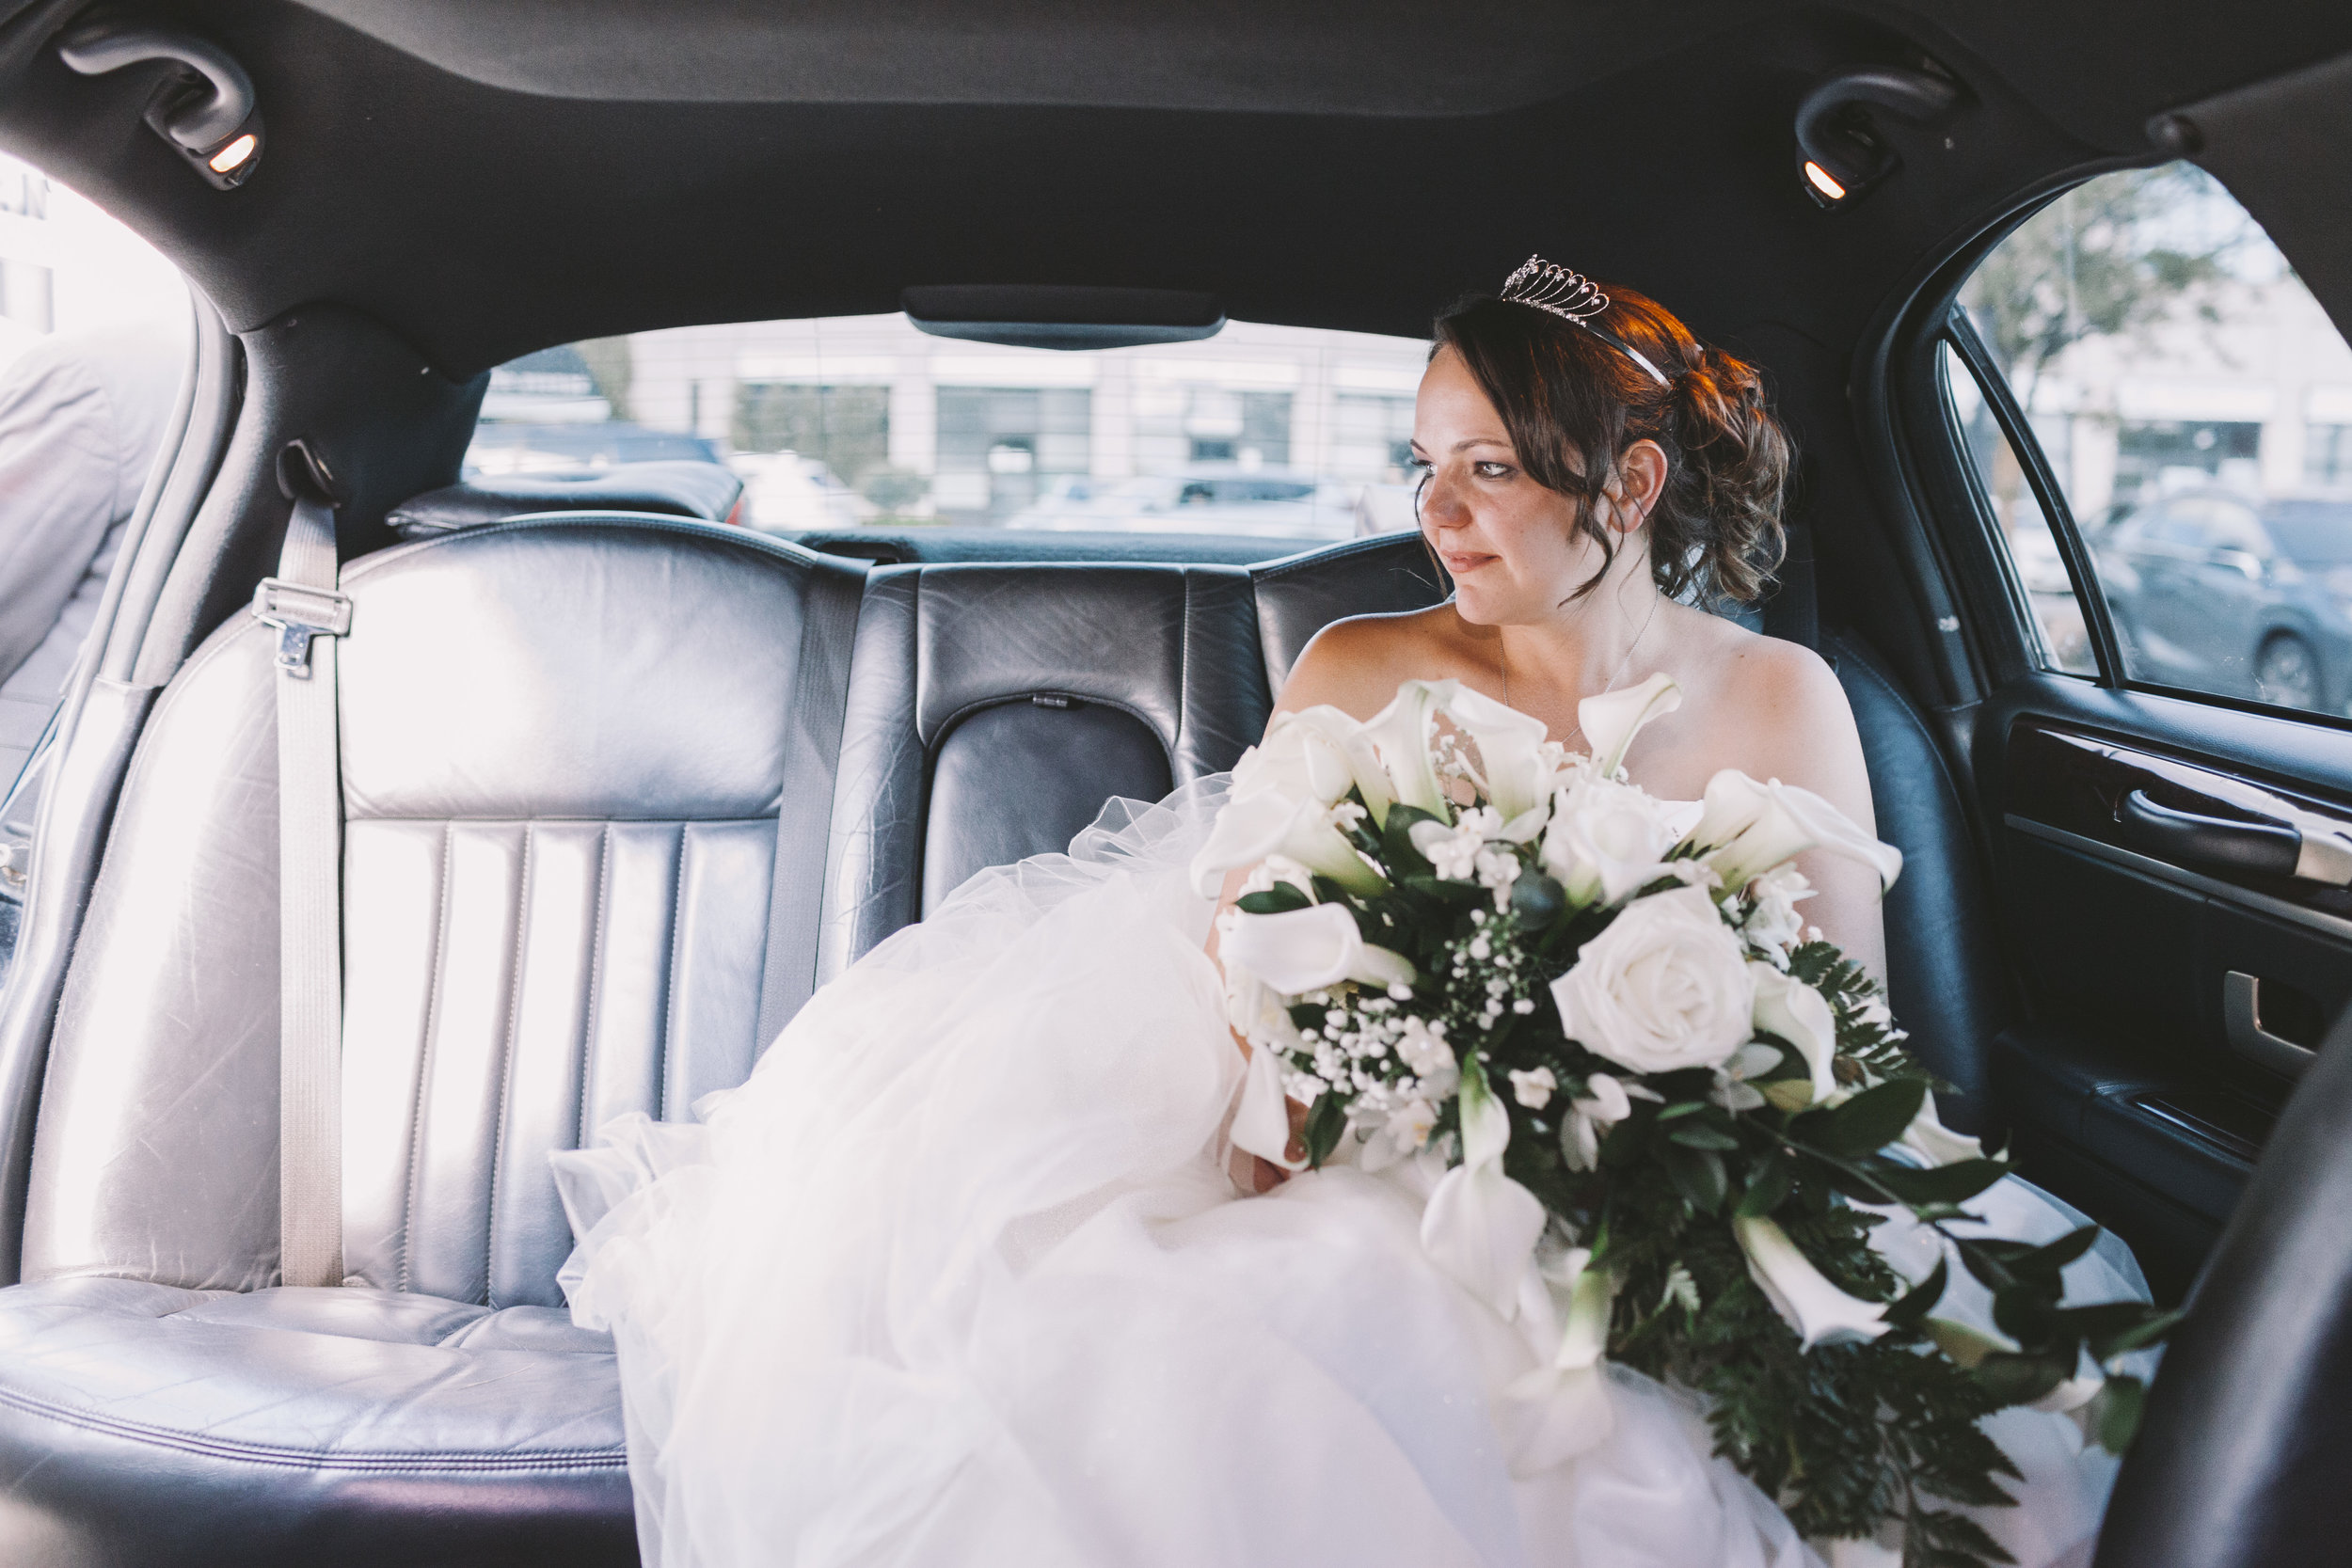 Bride waiting in limo